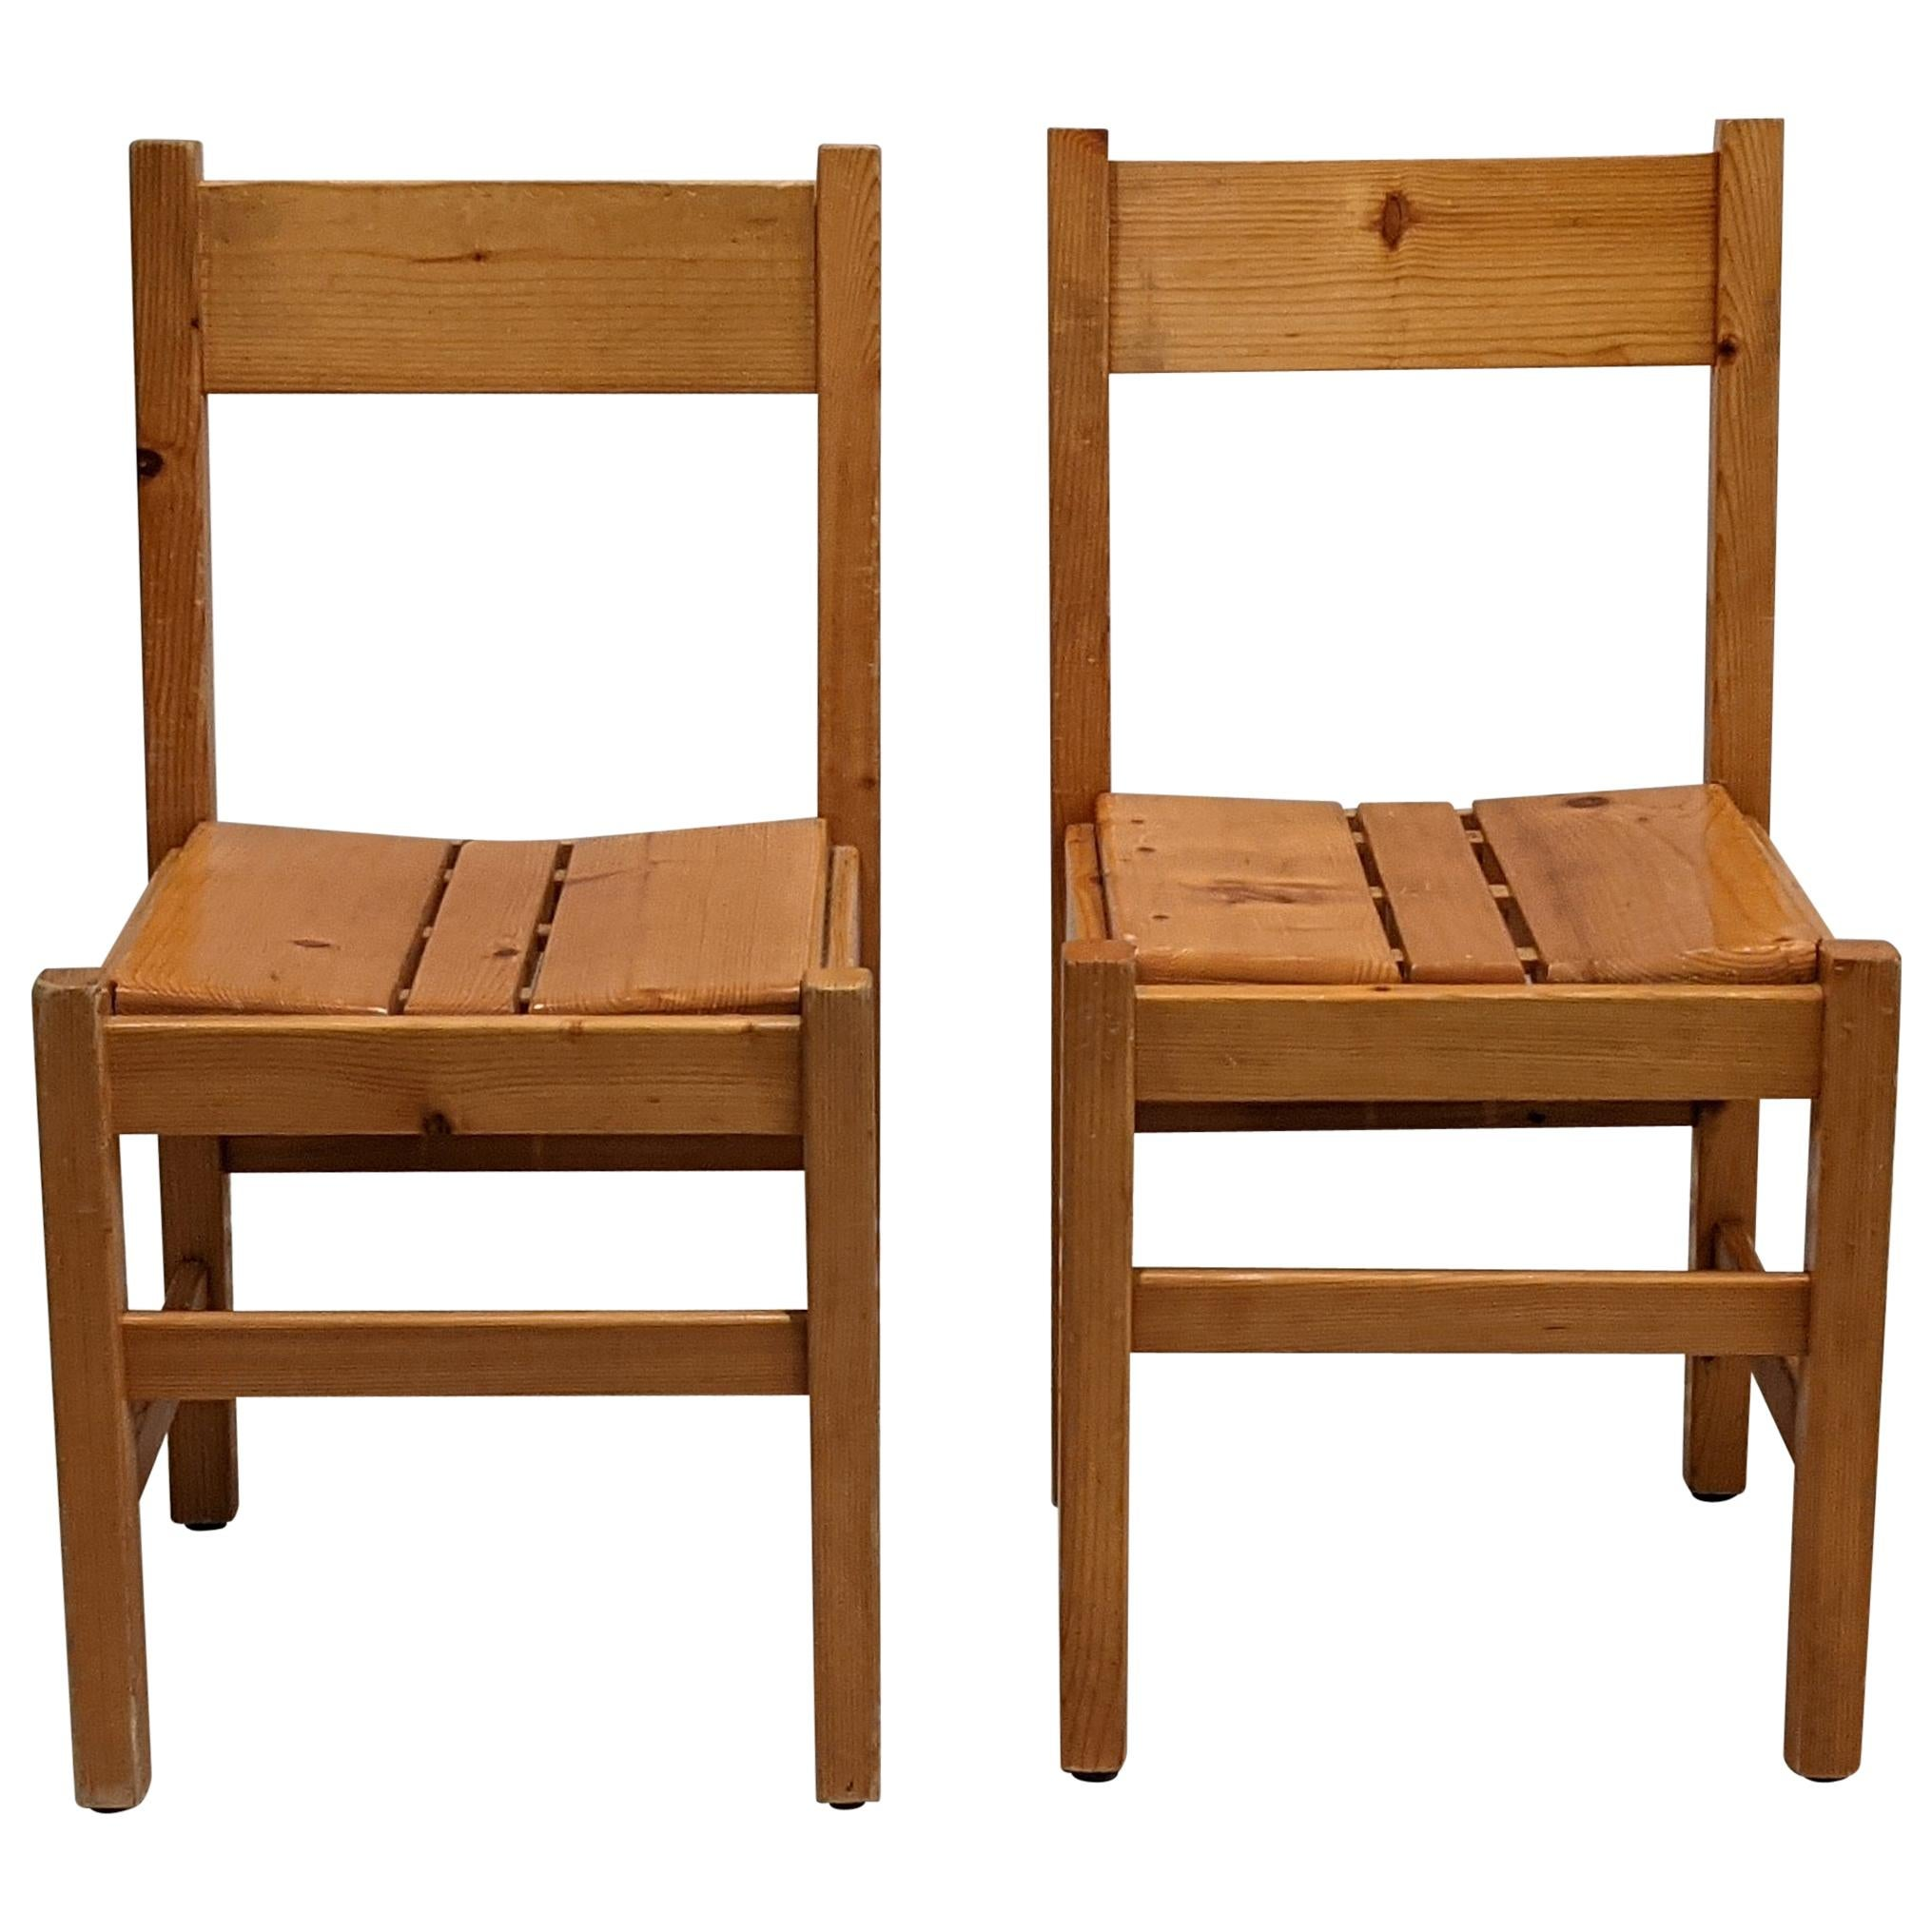 Set of 2 Chairs by Charlotte Perriand for Les Arcs